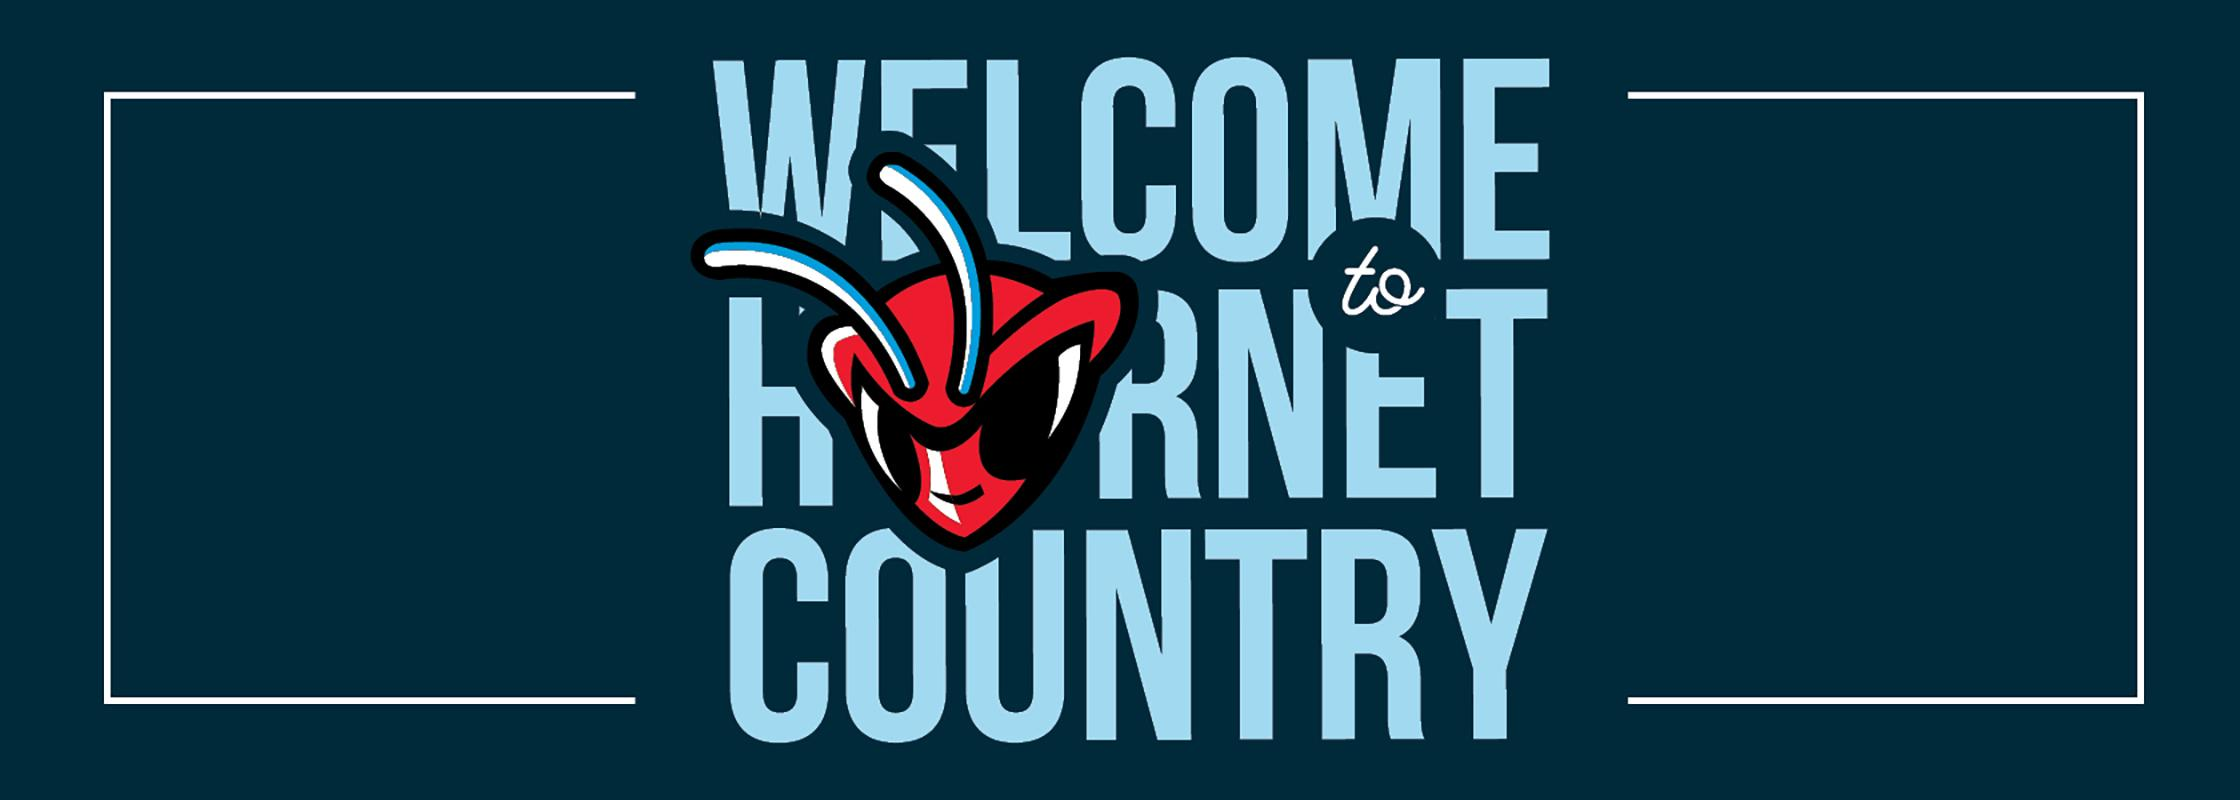 Welcome to Hornet Country